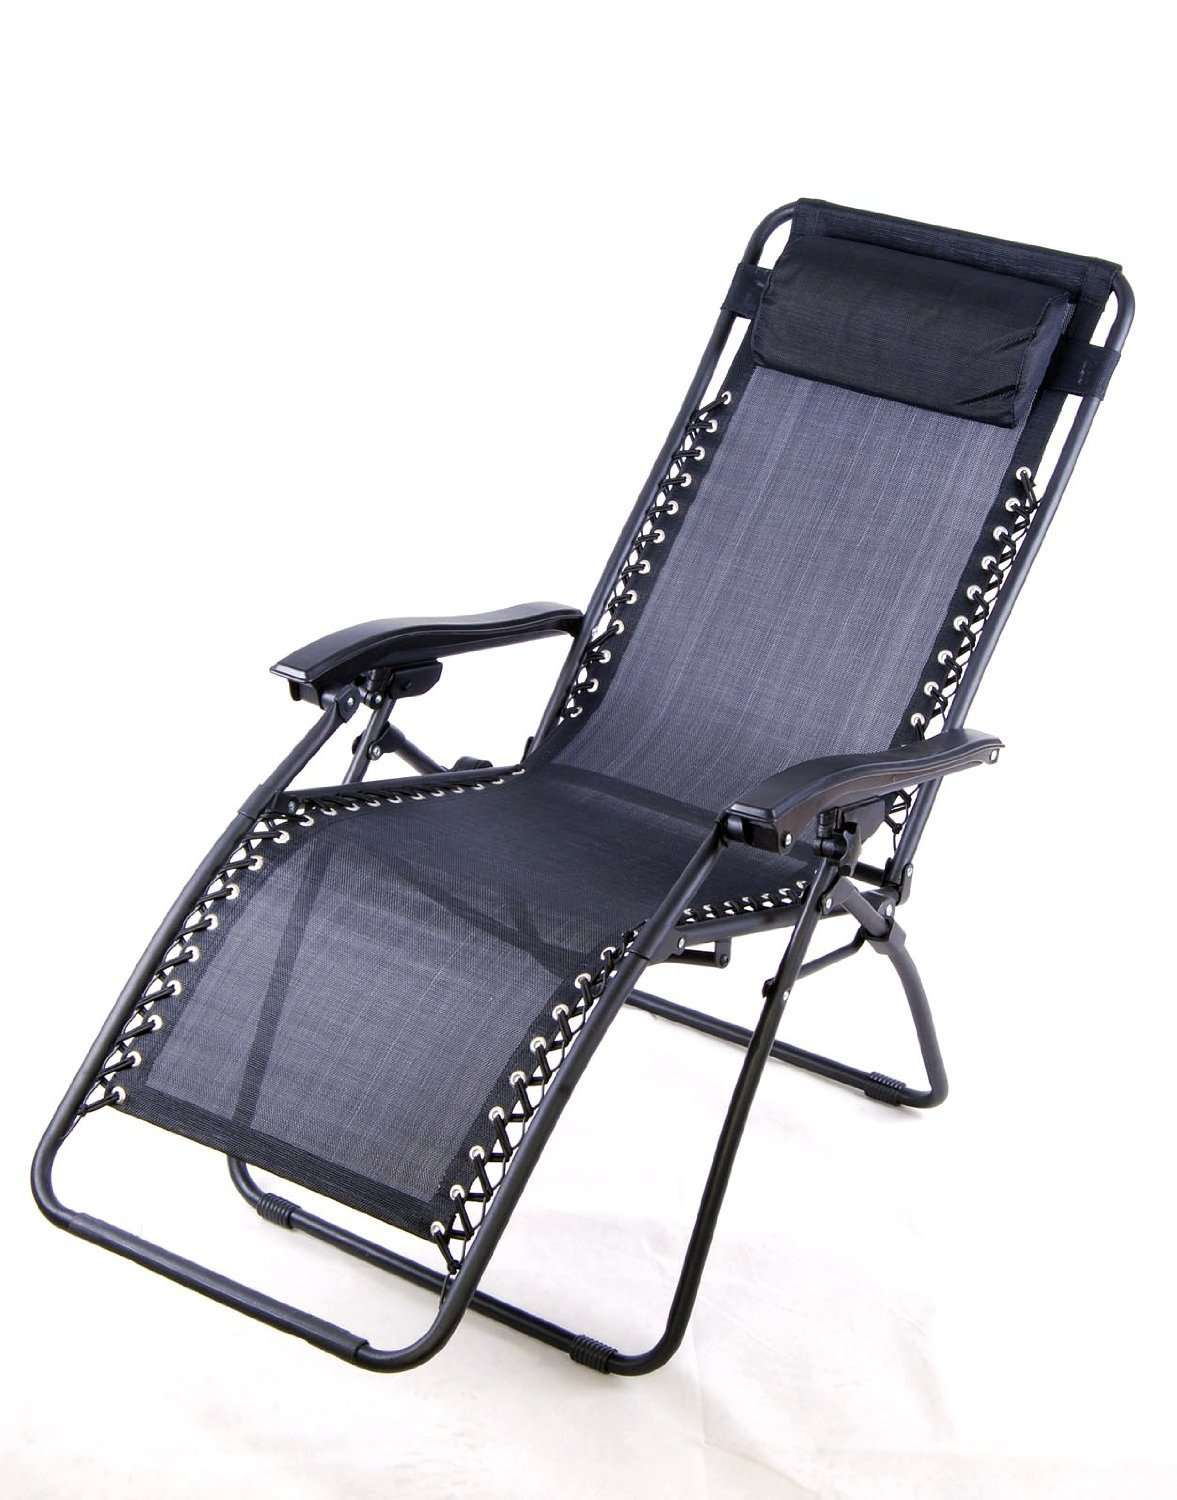 outsunny zero gravity recliner lounge patio pool chair - Zero Gravity Lounge Chair